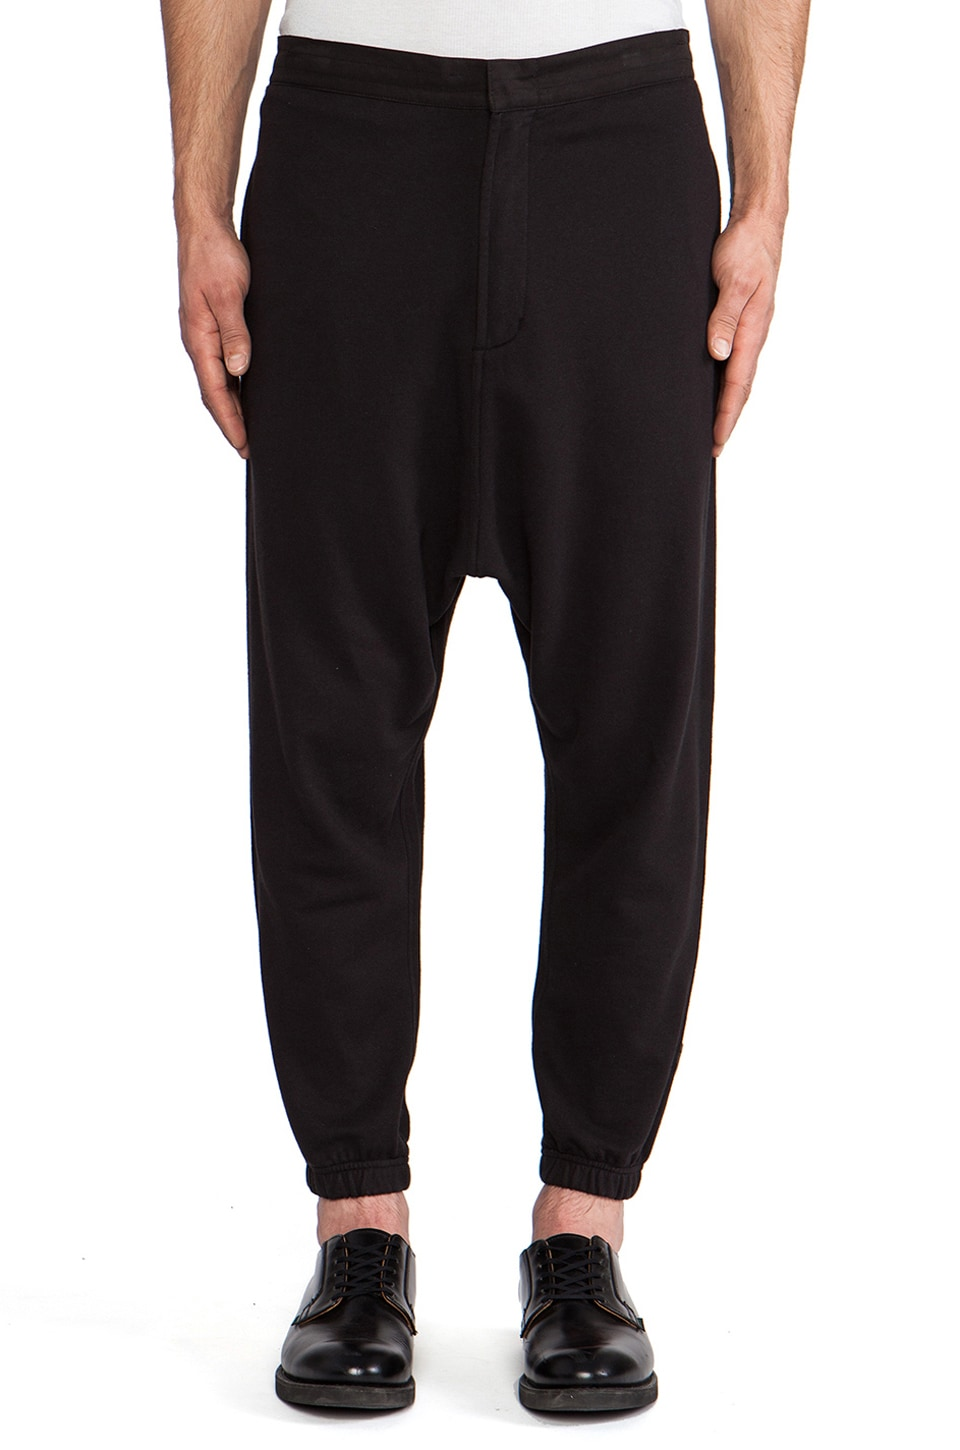 Maharishi Pathan Sweatpant in Black